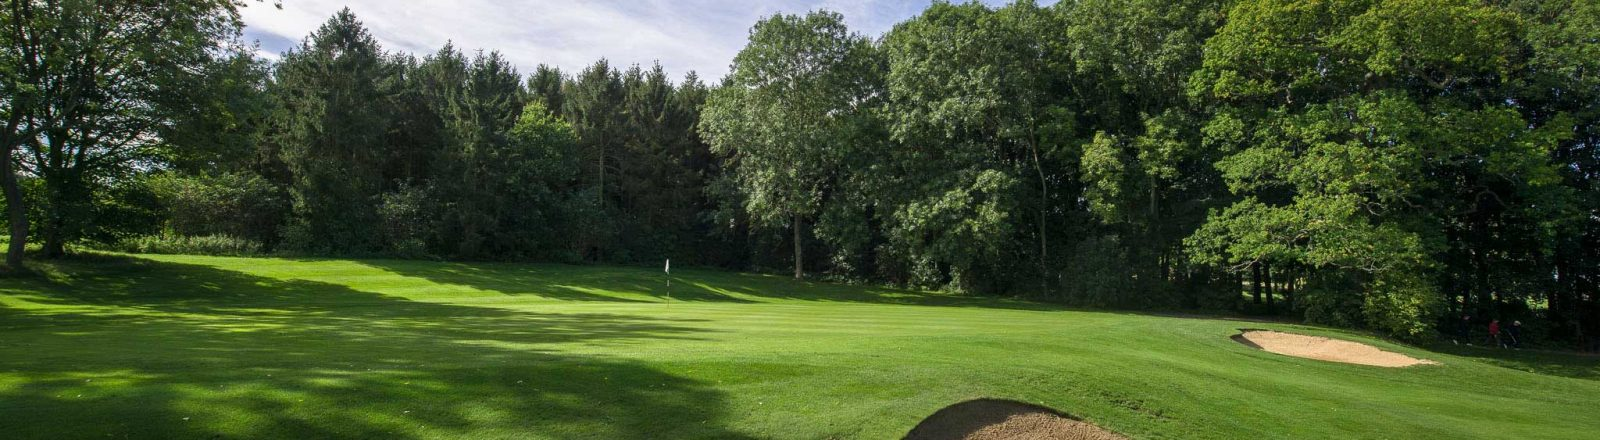 Redbourn Golf Club sloping green with bunker